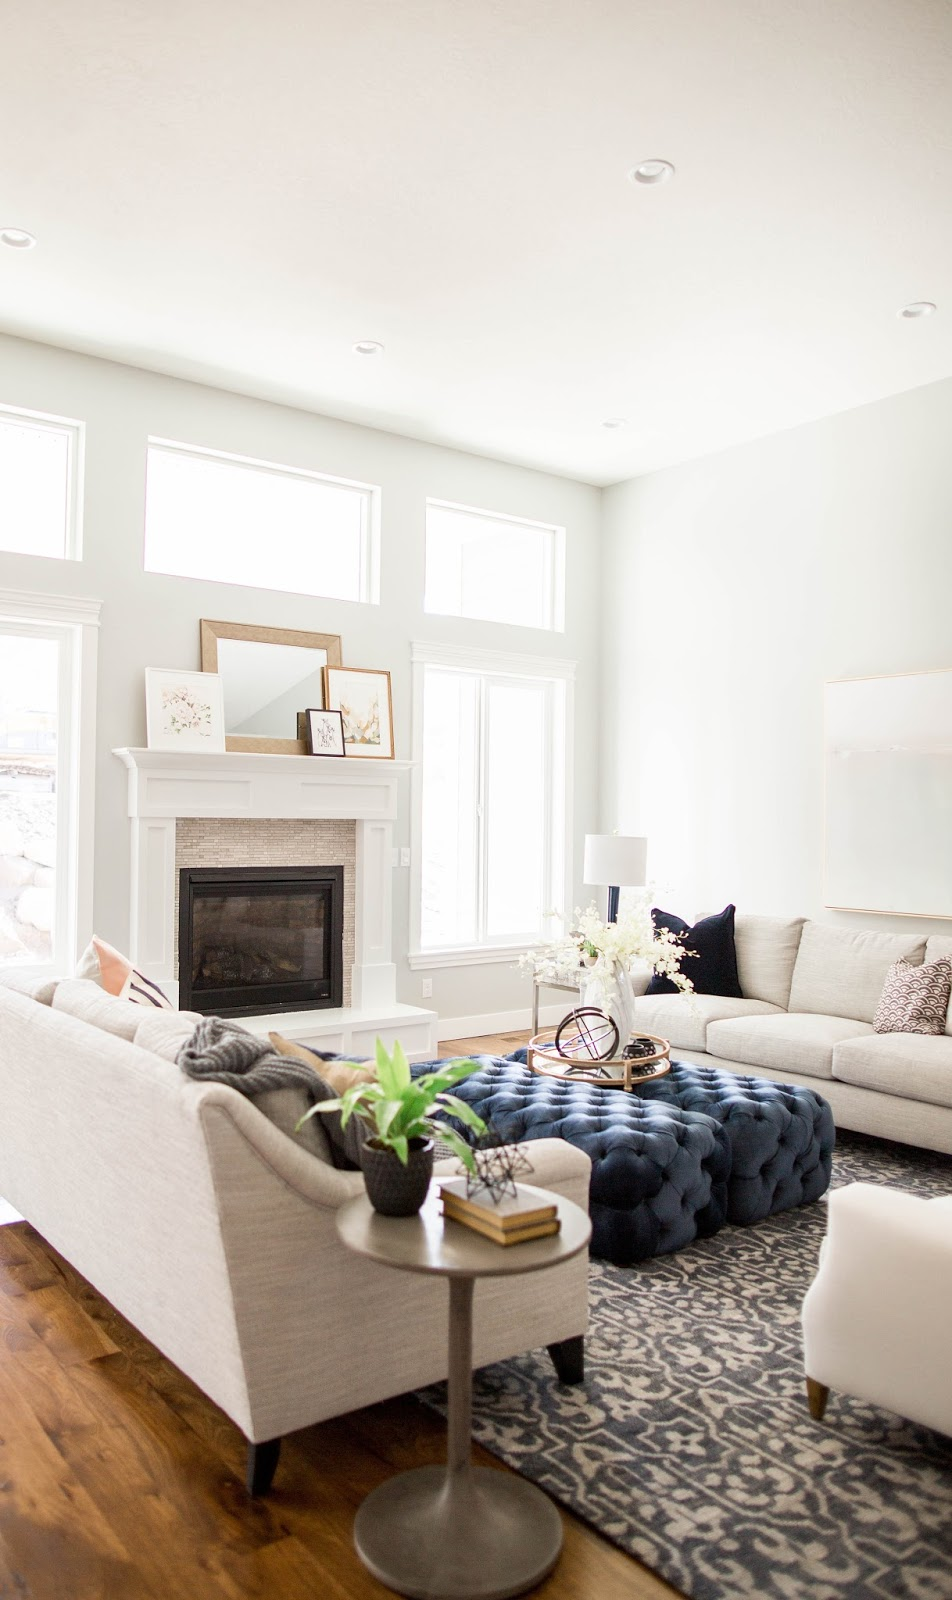 Mecham Dream Home || Living Room Reveal